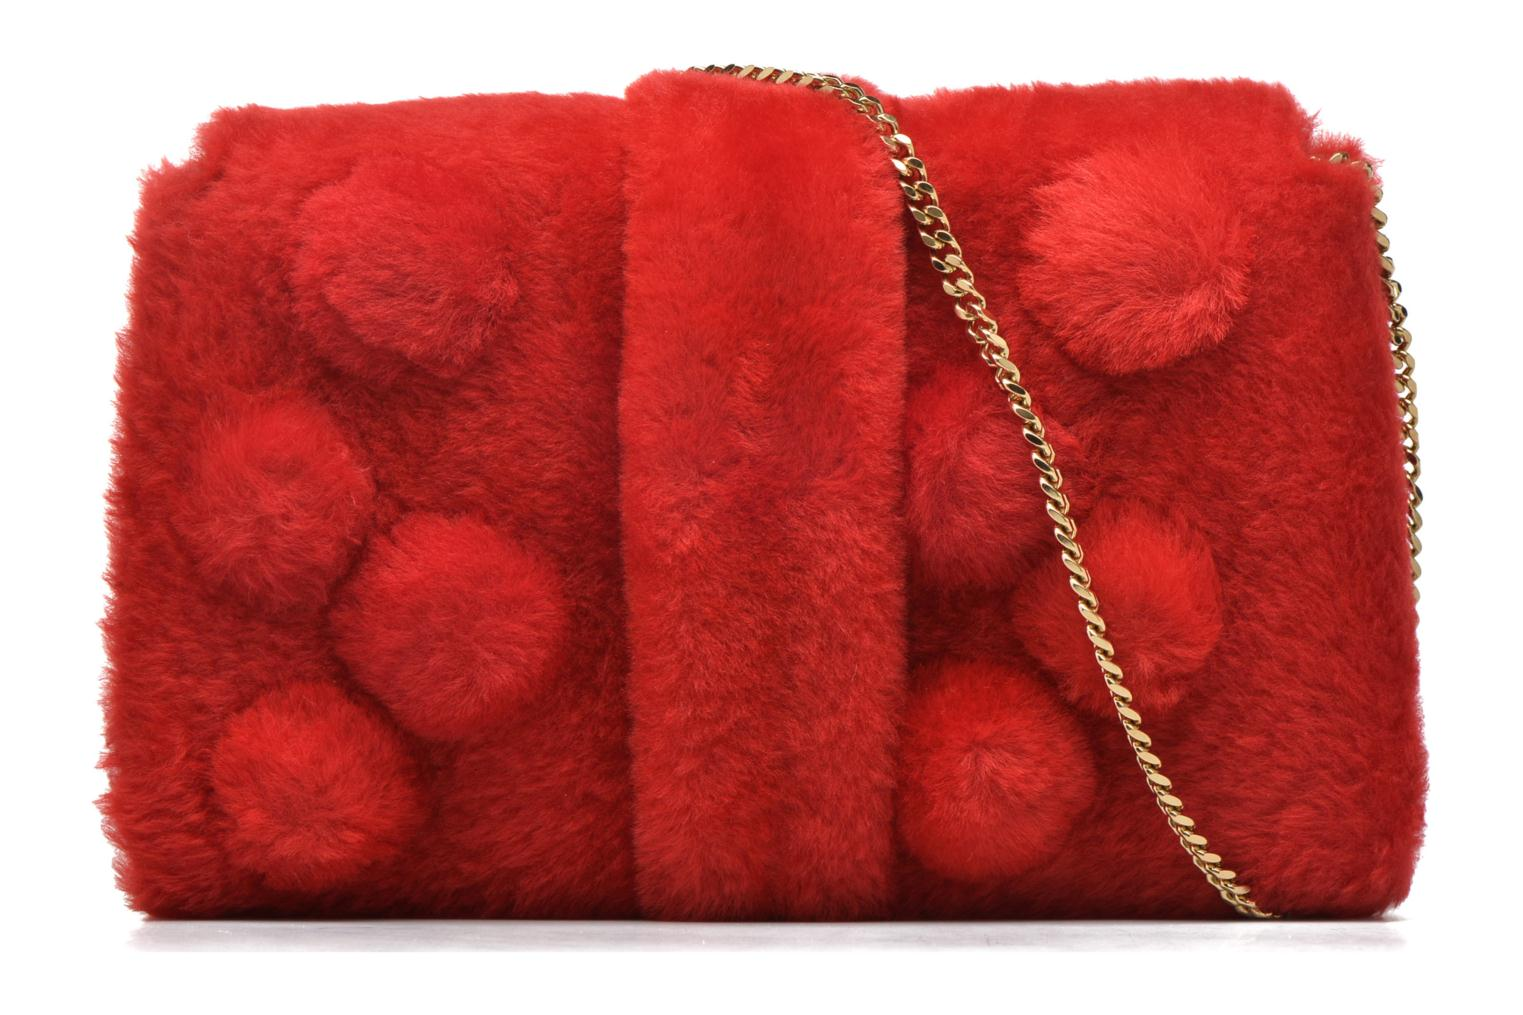 Handbags Sonia Rykiel LE LUCO MATELASSE Porté travers Red front view